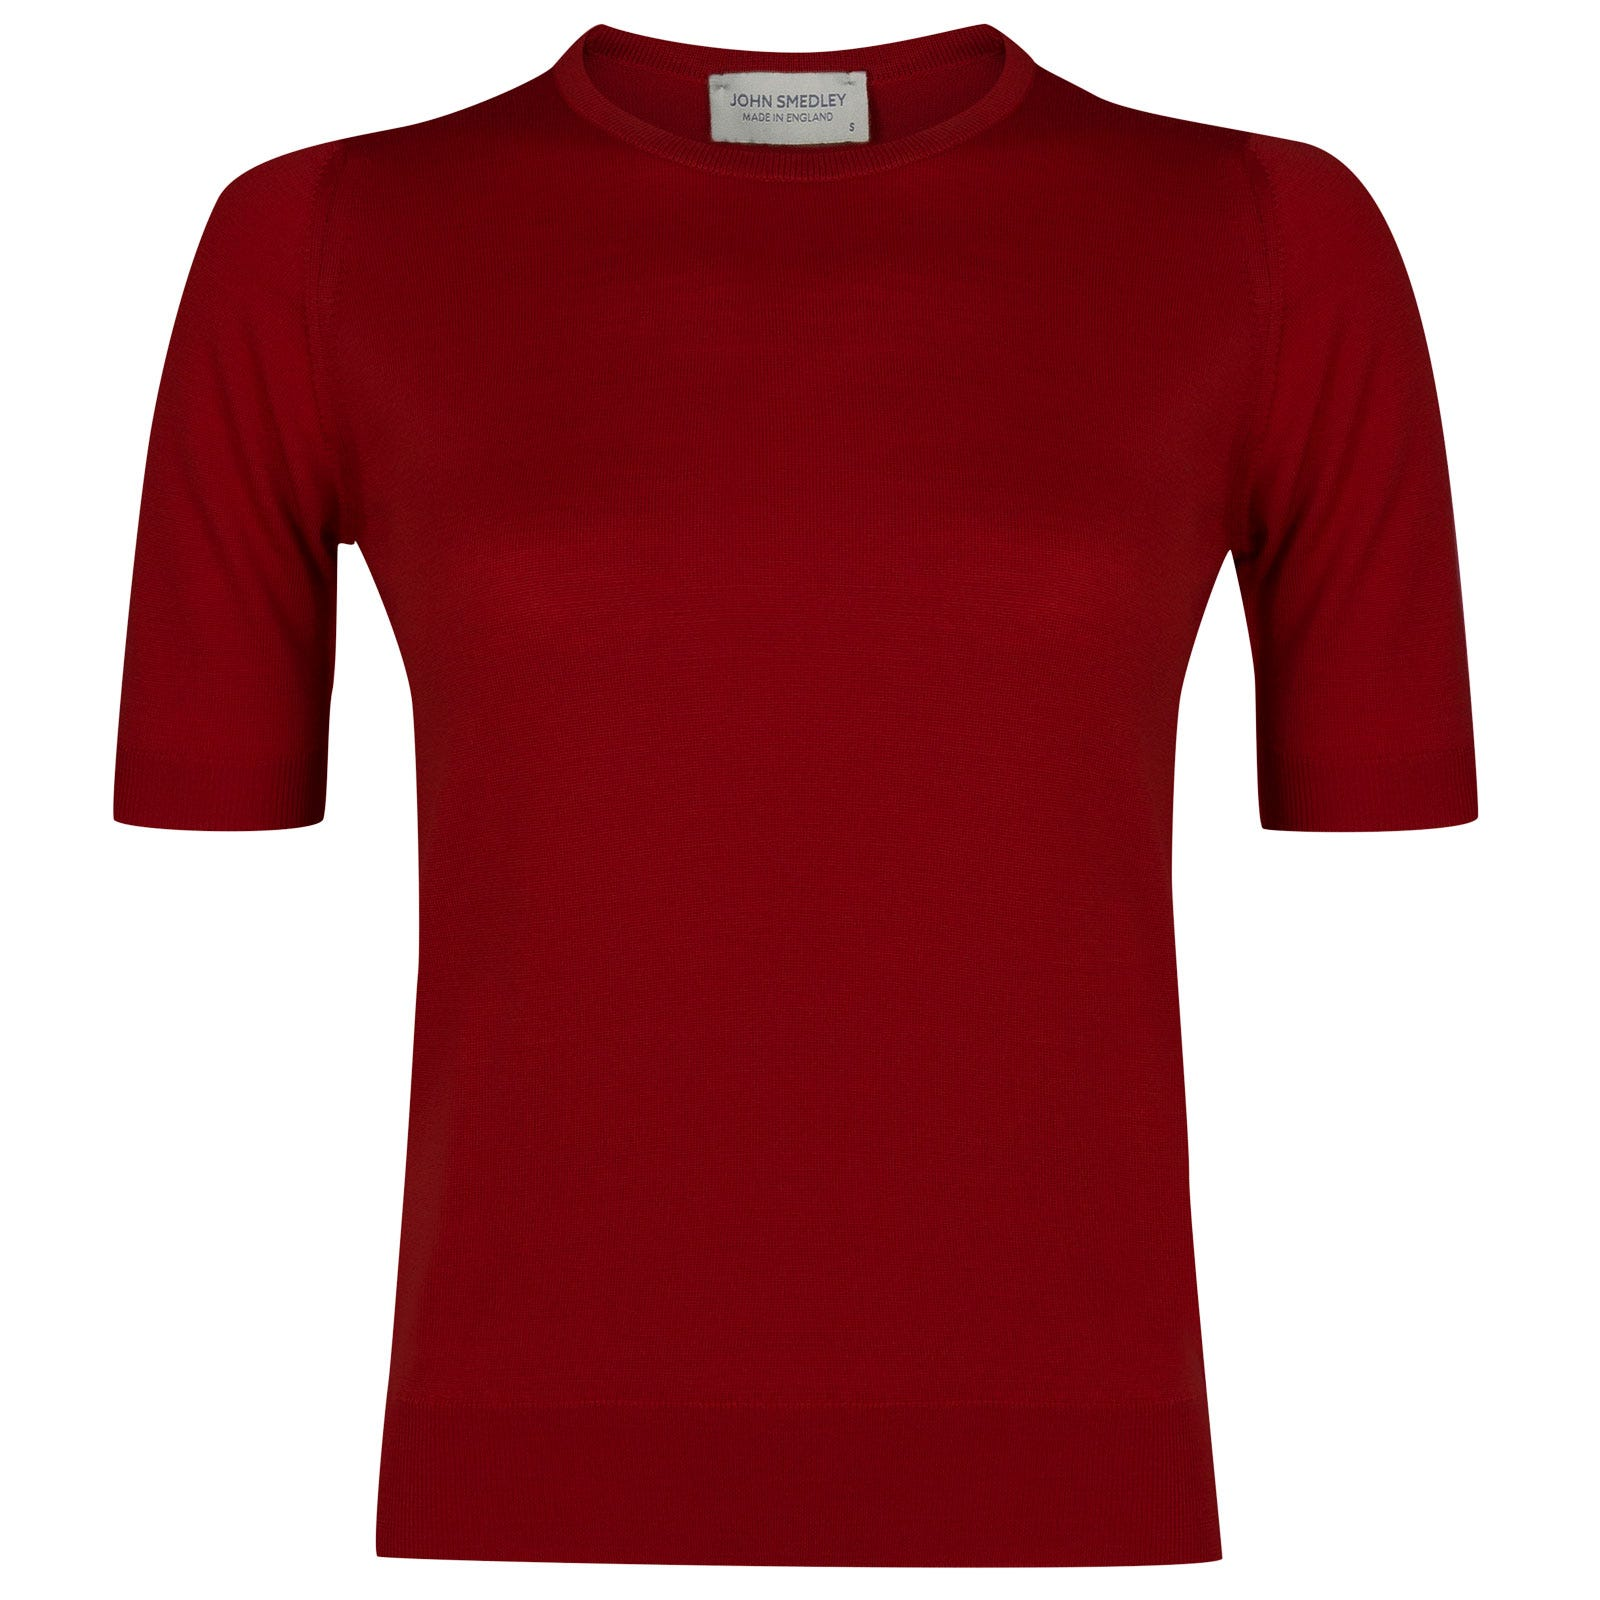 John Smedley trieste Merino Wool Sweater in Crimson Forest-S